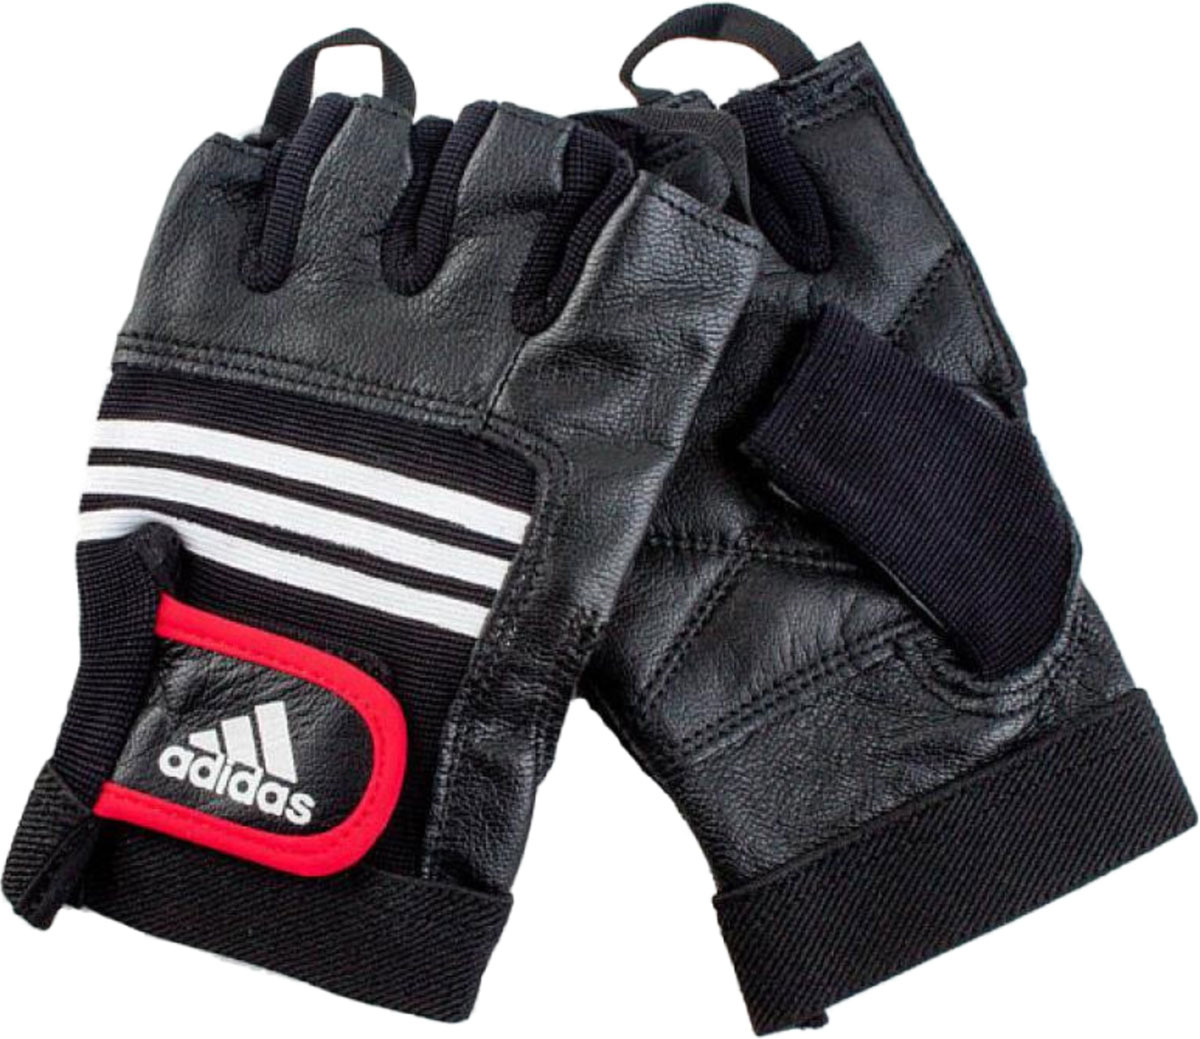 Тяжелоатлетические перчатки Adidas Leather Lifting Glove, цвет: черный, размер S/M george shaw general zoology or systematic natural history vol 3 part 2 amphibia